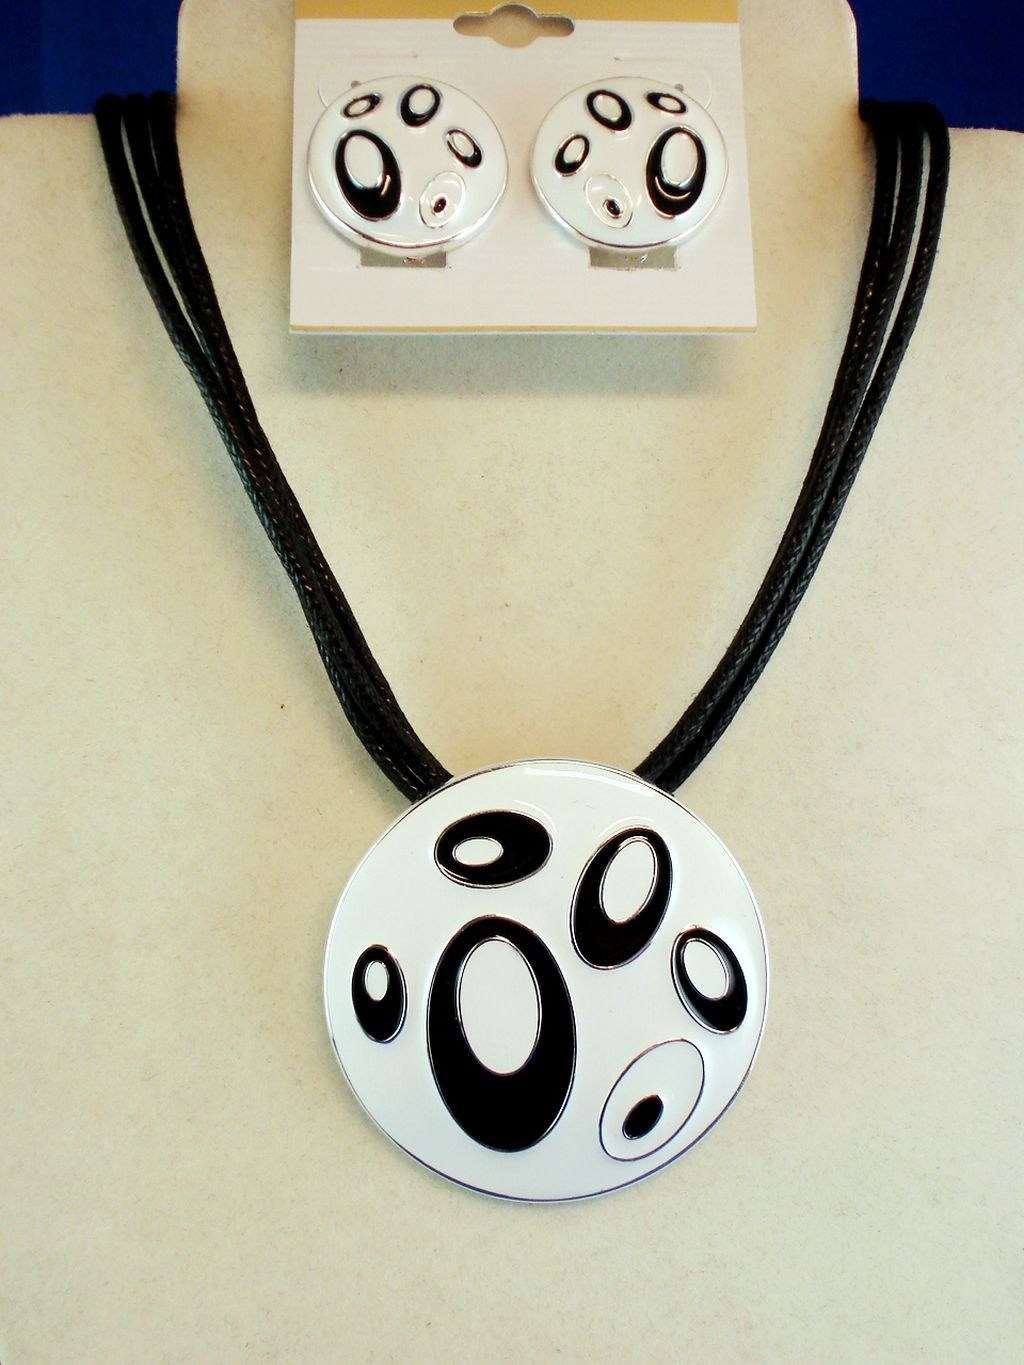 White Tiger Animal Print Set of Circle Pendant Necklace & Clip Earrings, Silver Tone Metal, Black Cotton Cord, Anti-allergic Jewelry